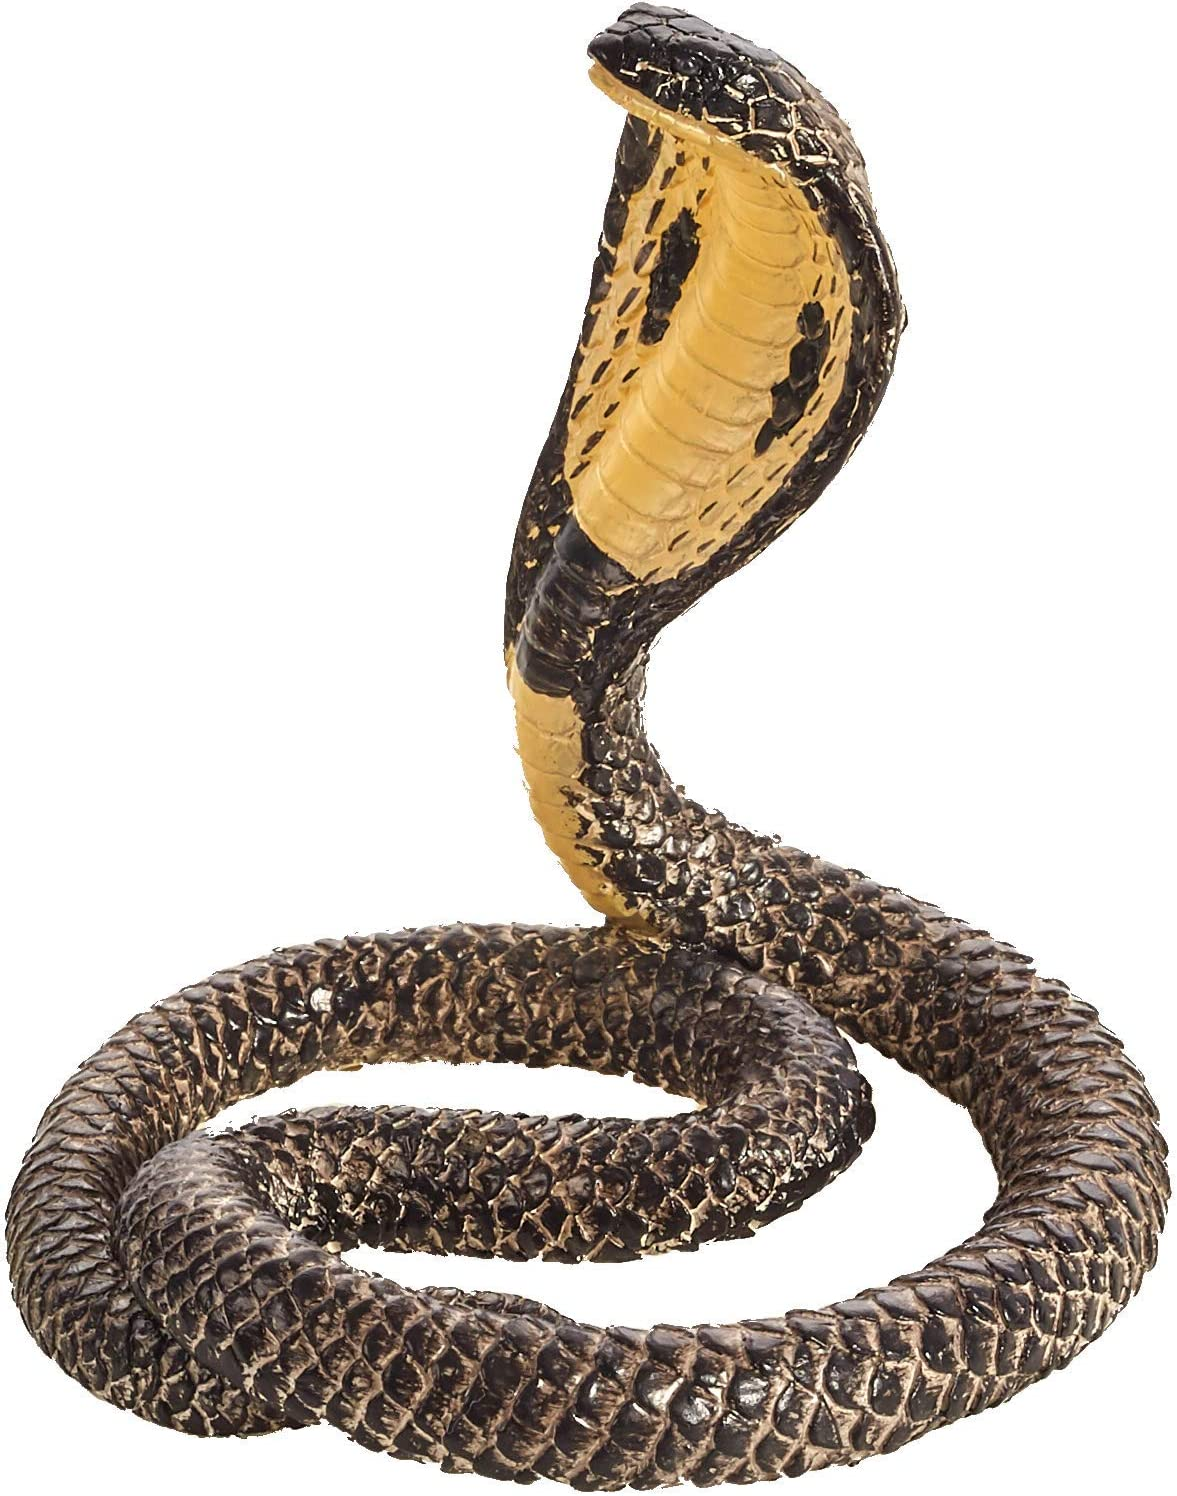 Halloween Fake Realistic Rubber Toy Figure King Cobra Snake Props Scary Gag NEW